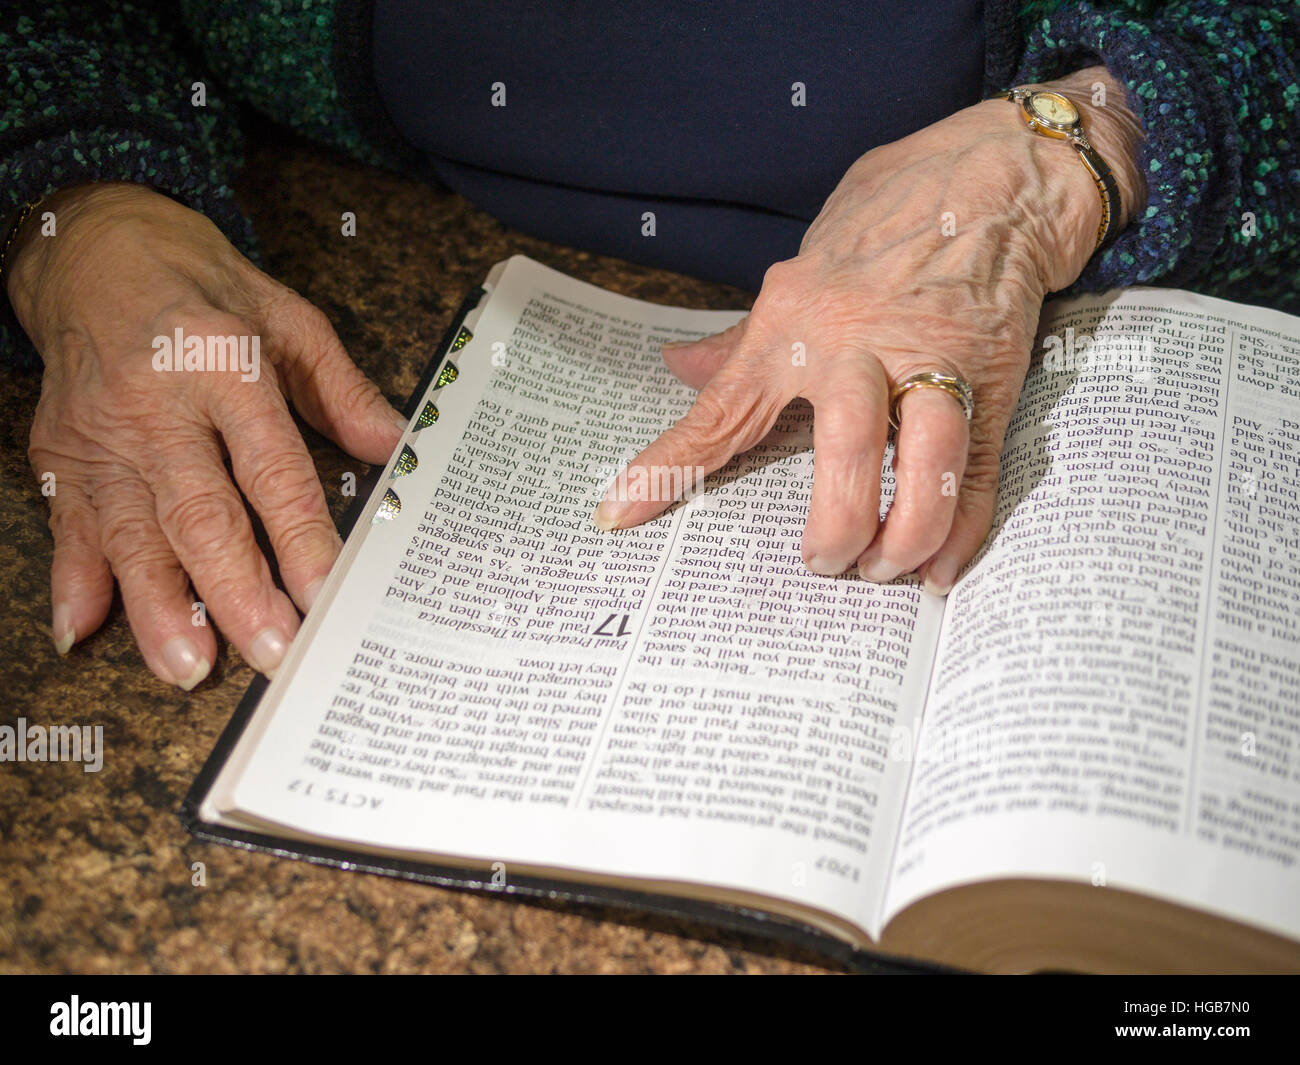 Reading a large print Bible. An old woman's arthritic and wrinkled hand and finger guiding her reading of a - Stock Image